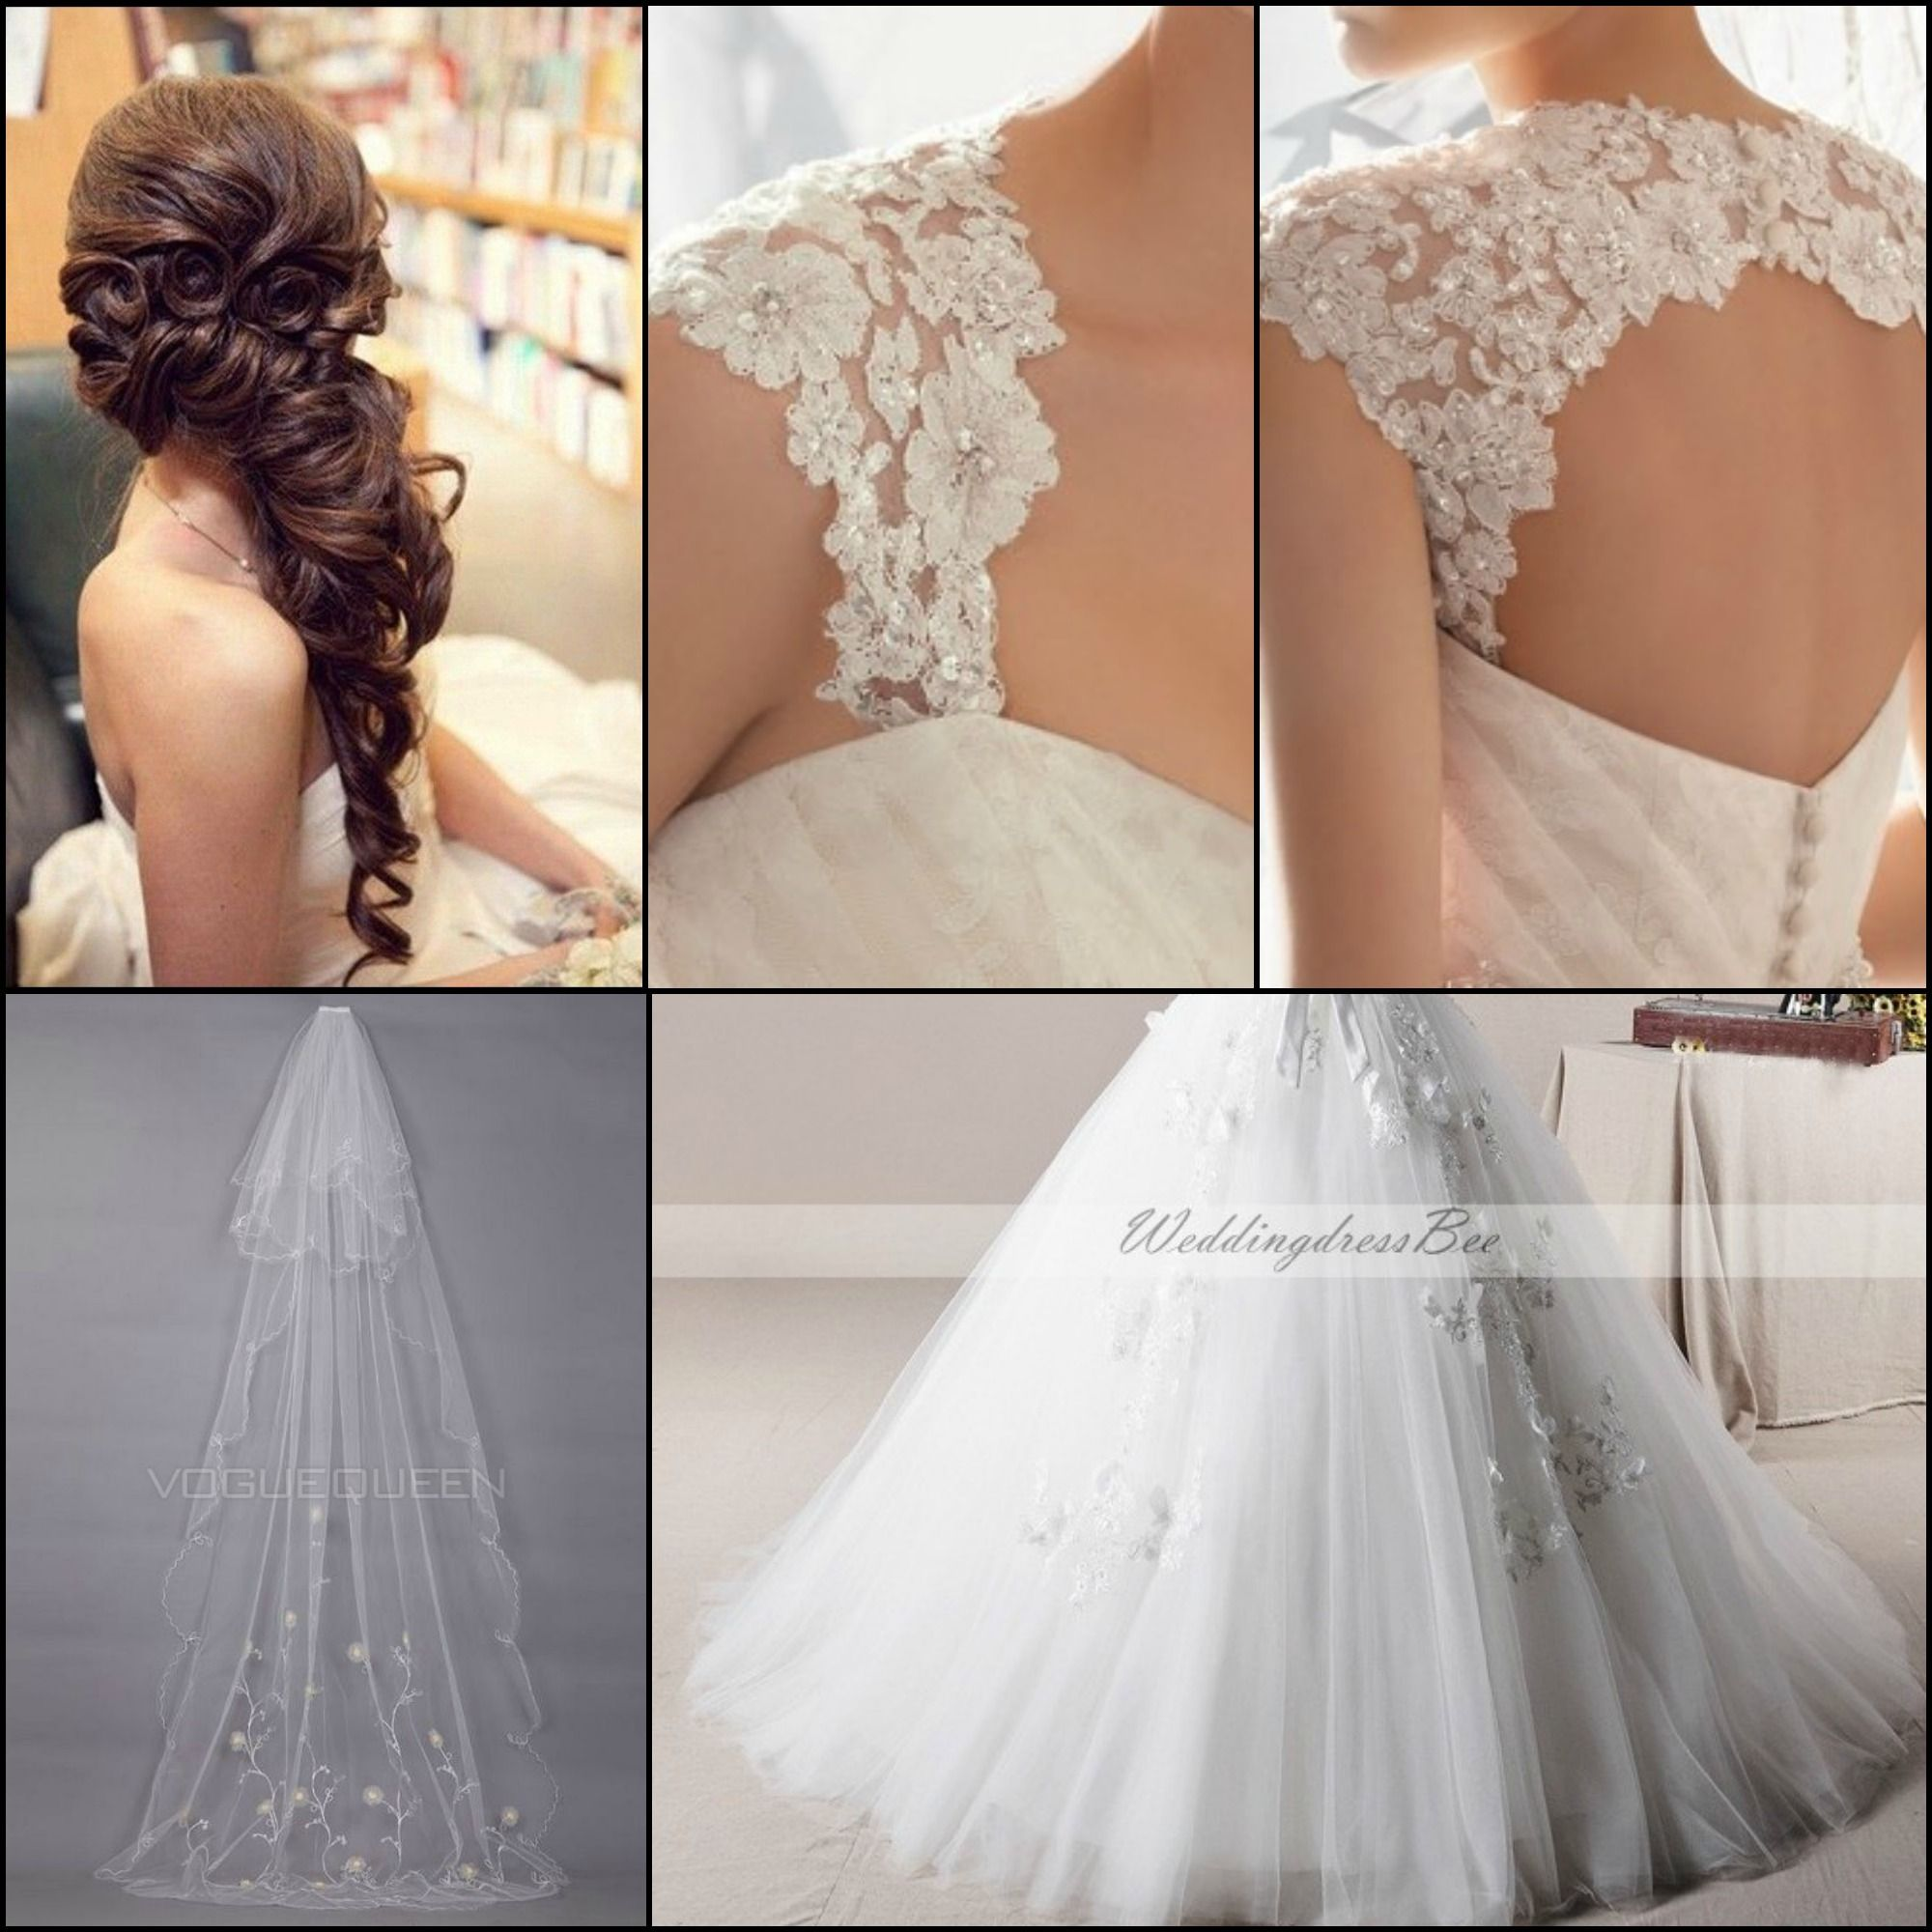 Mixture of wedding dress ideas lace cap sleeves that continue onto